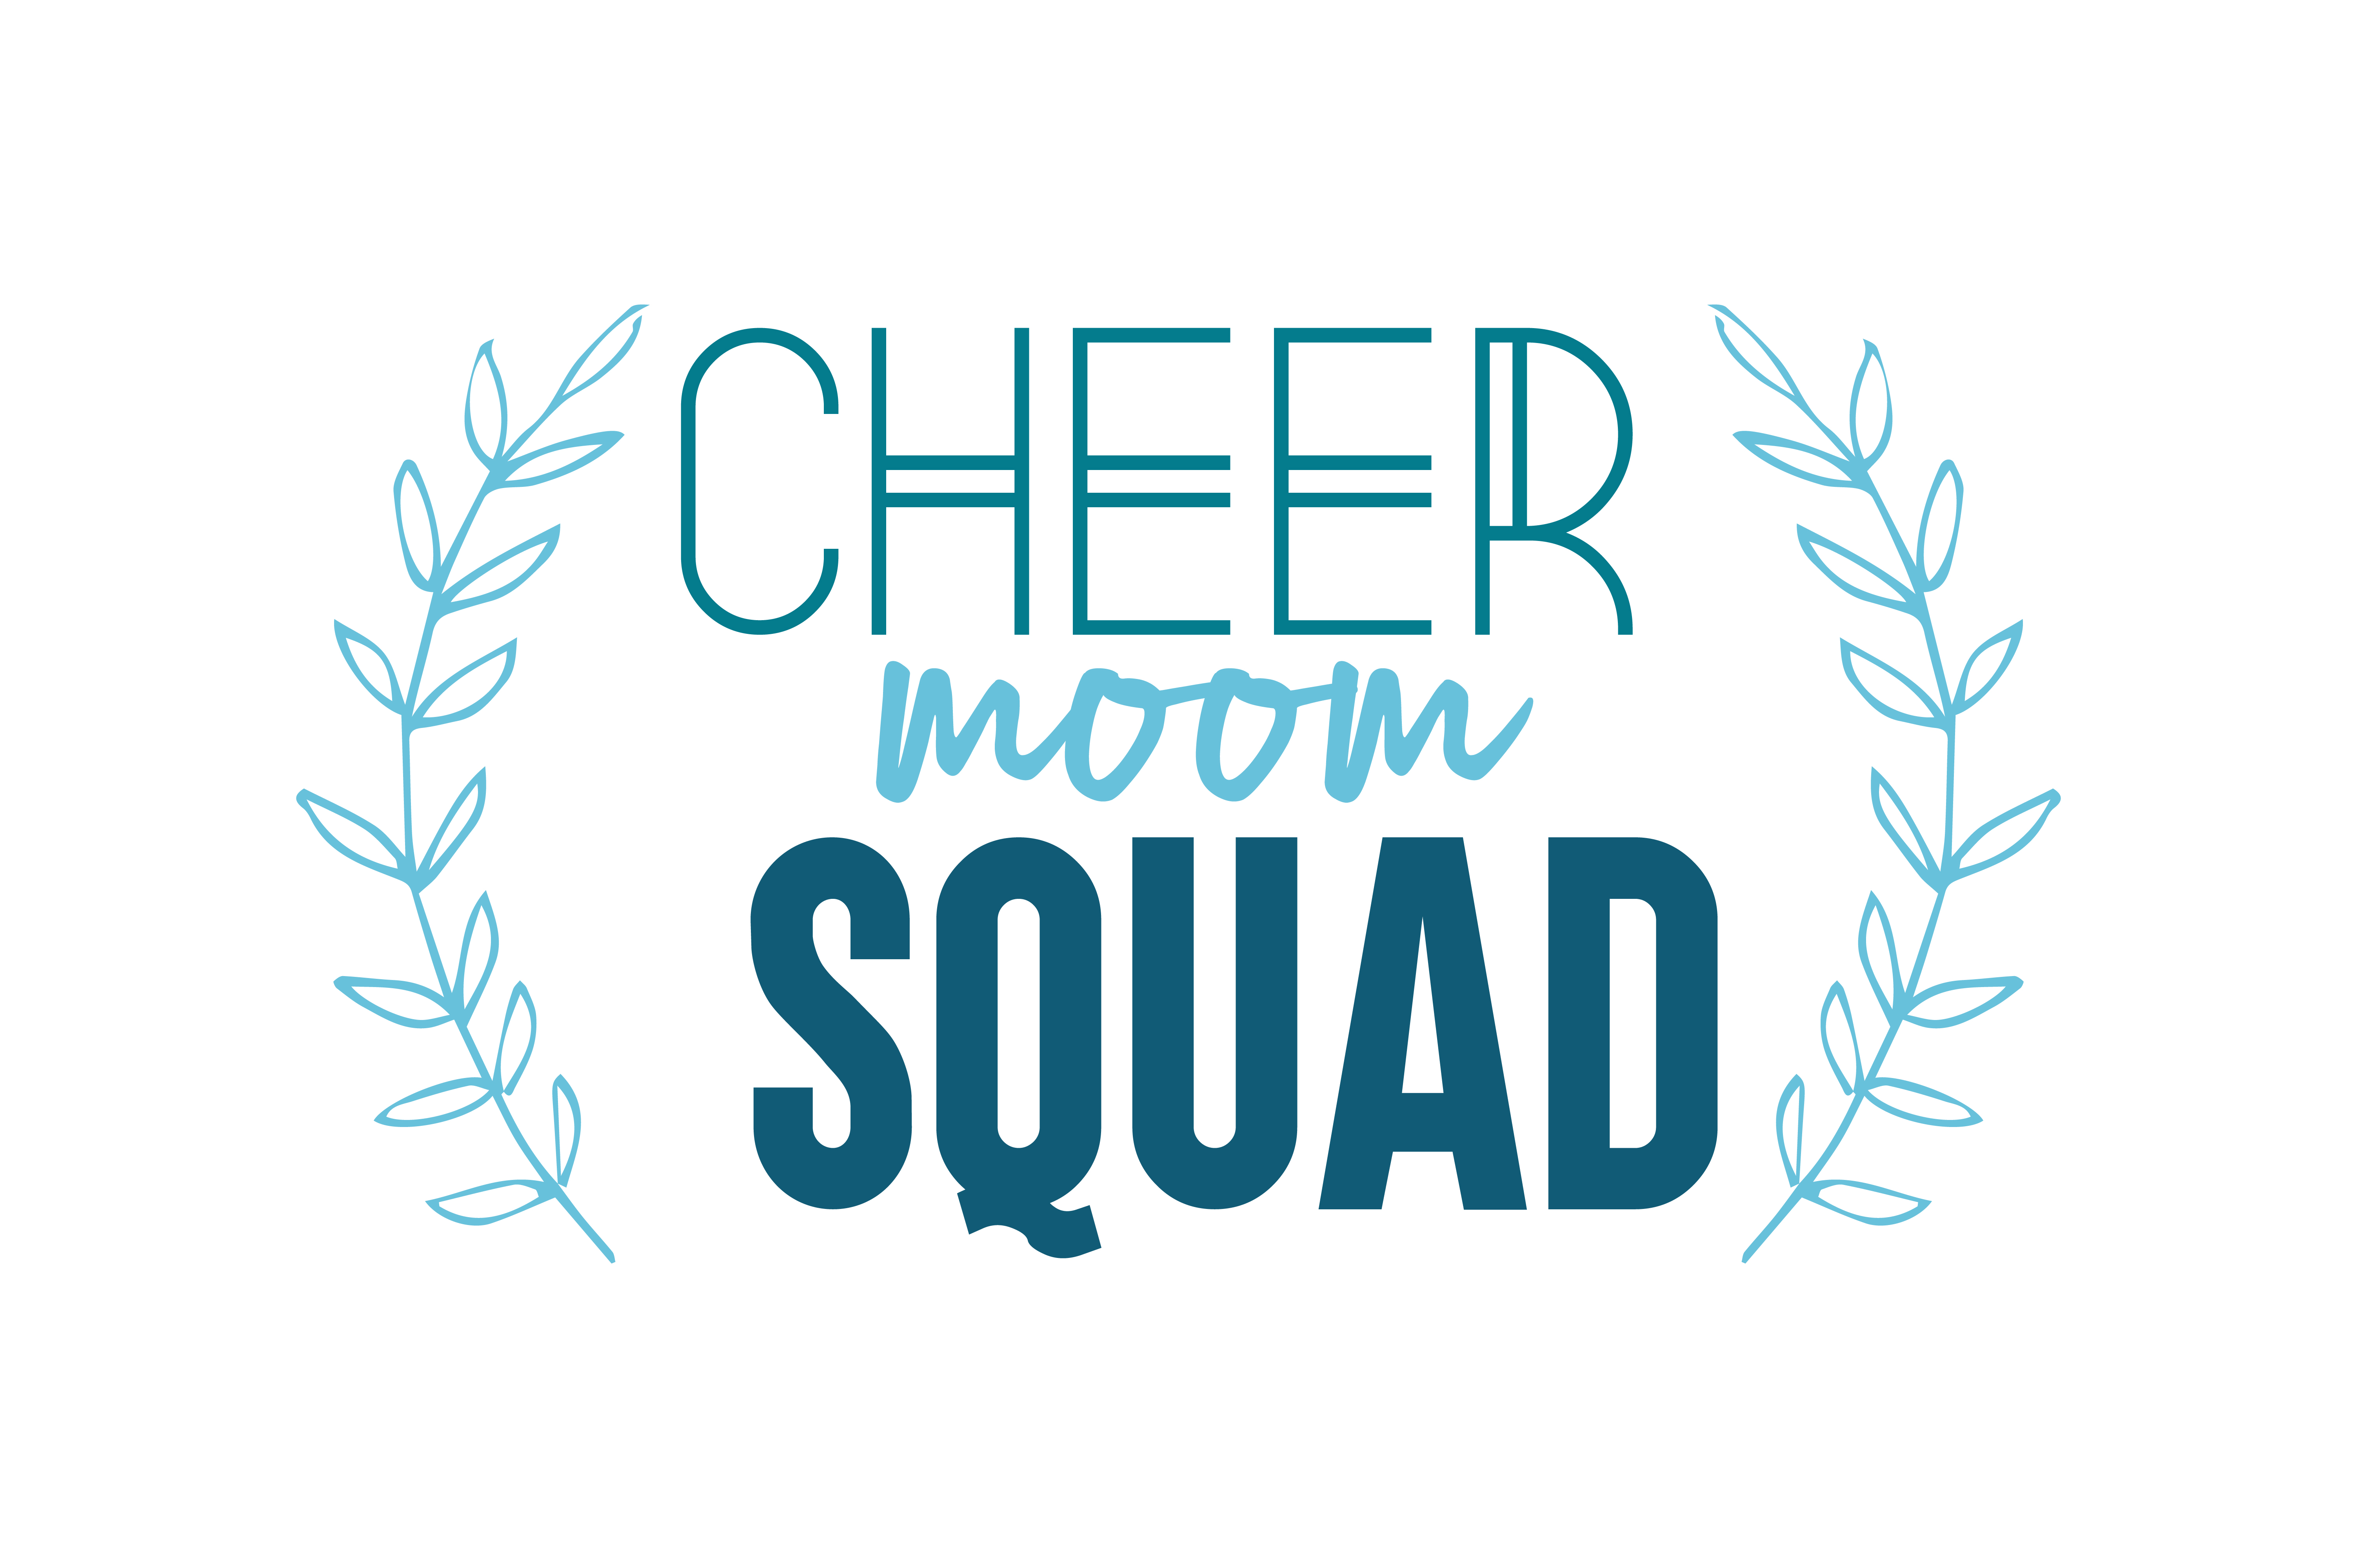 Download Free Cheer Moom Squad Svg Cut Quote Graphic By Thelucky Creative for Cricut Explore, Silhouette and other cutting machines.